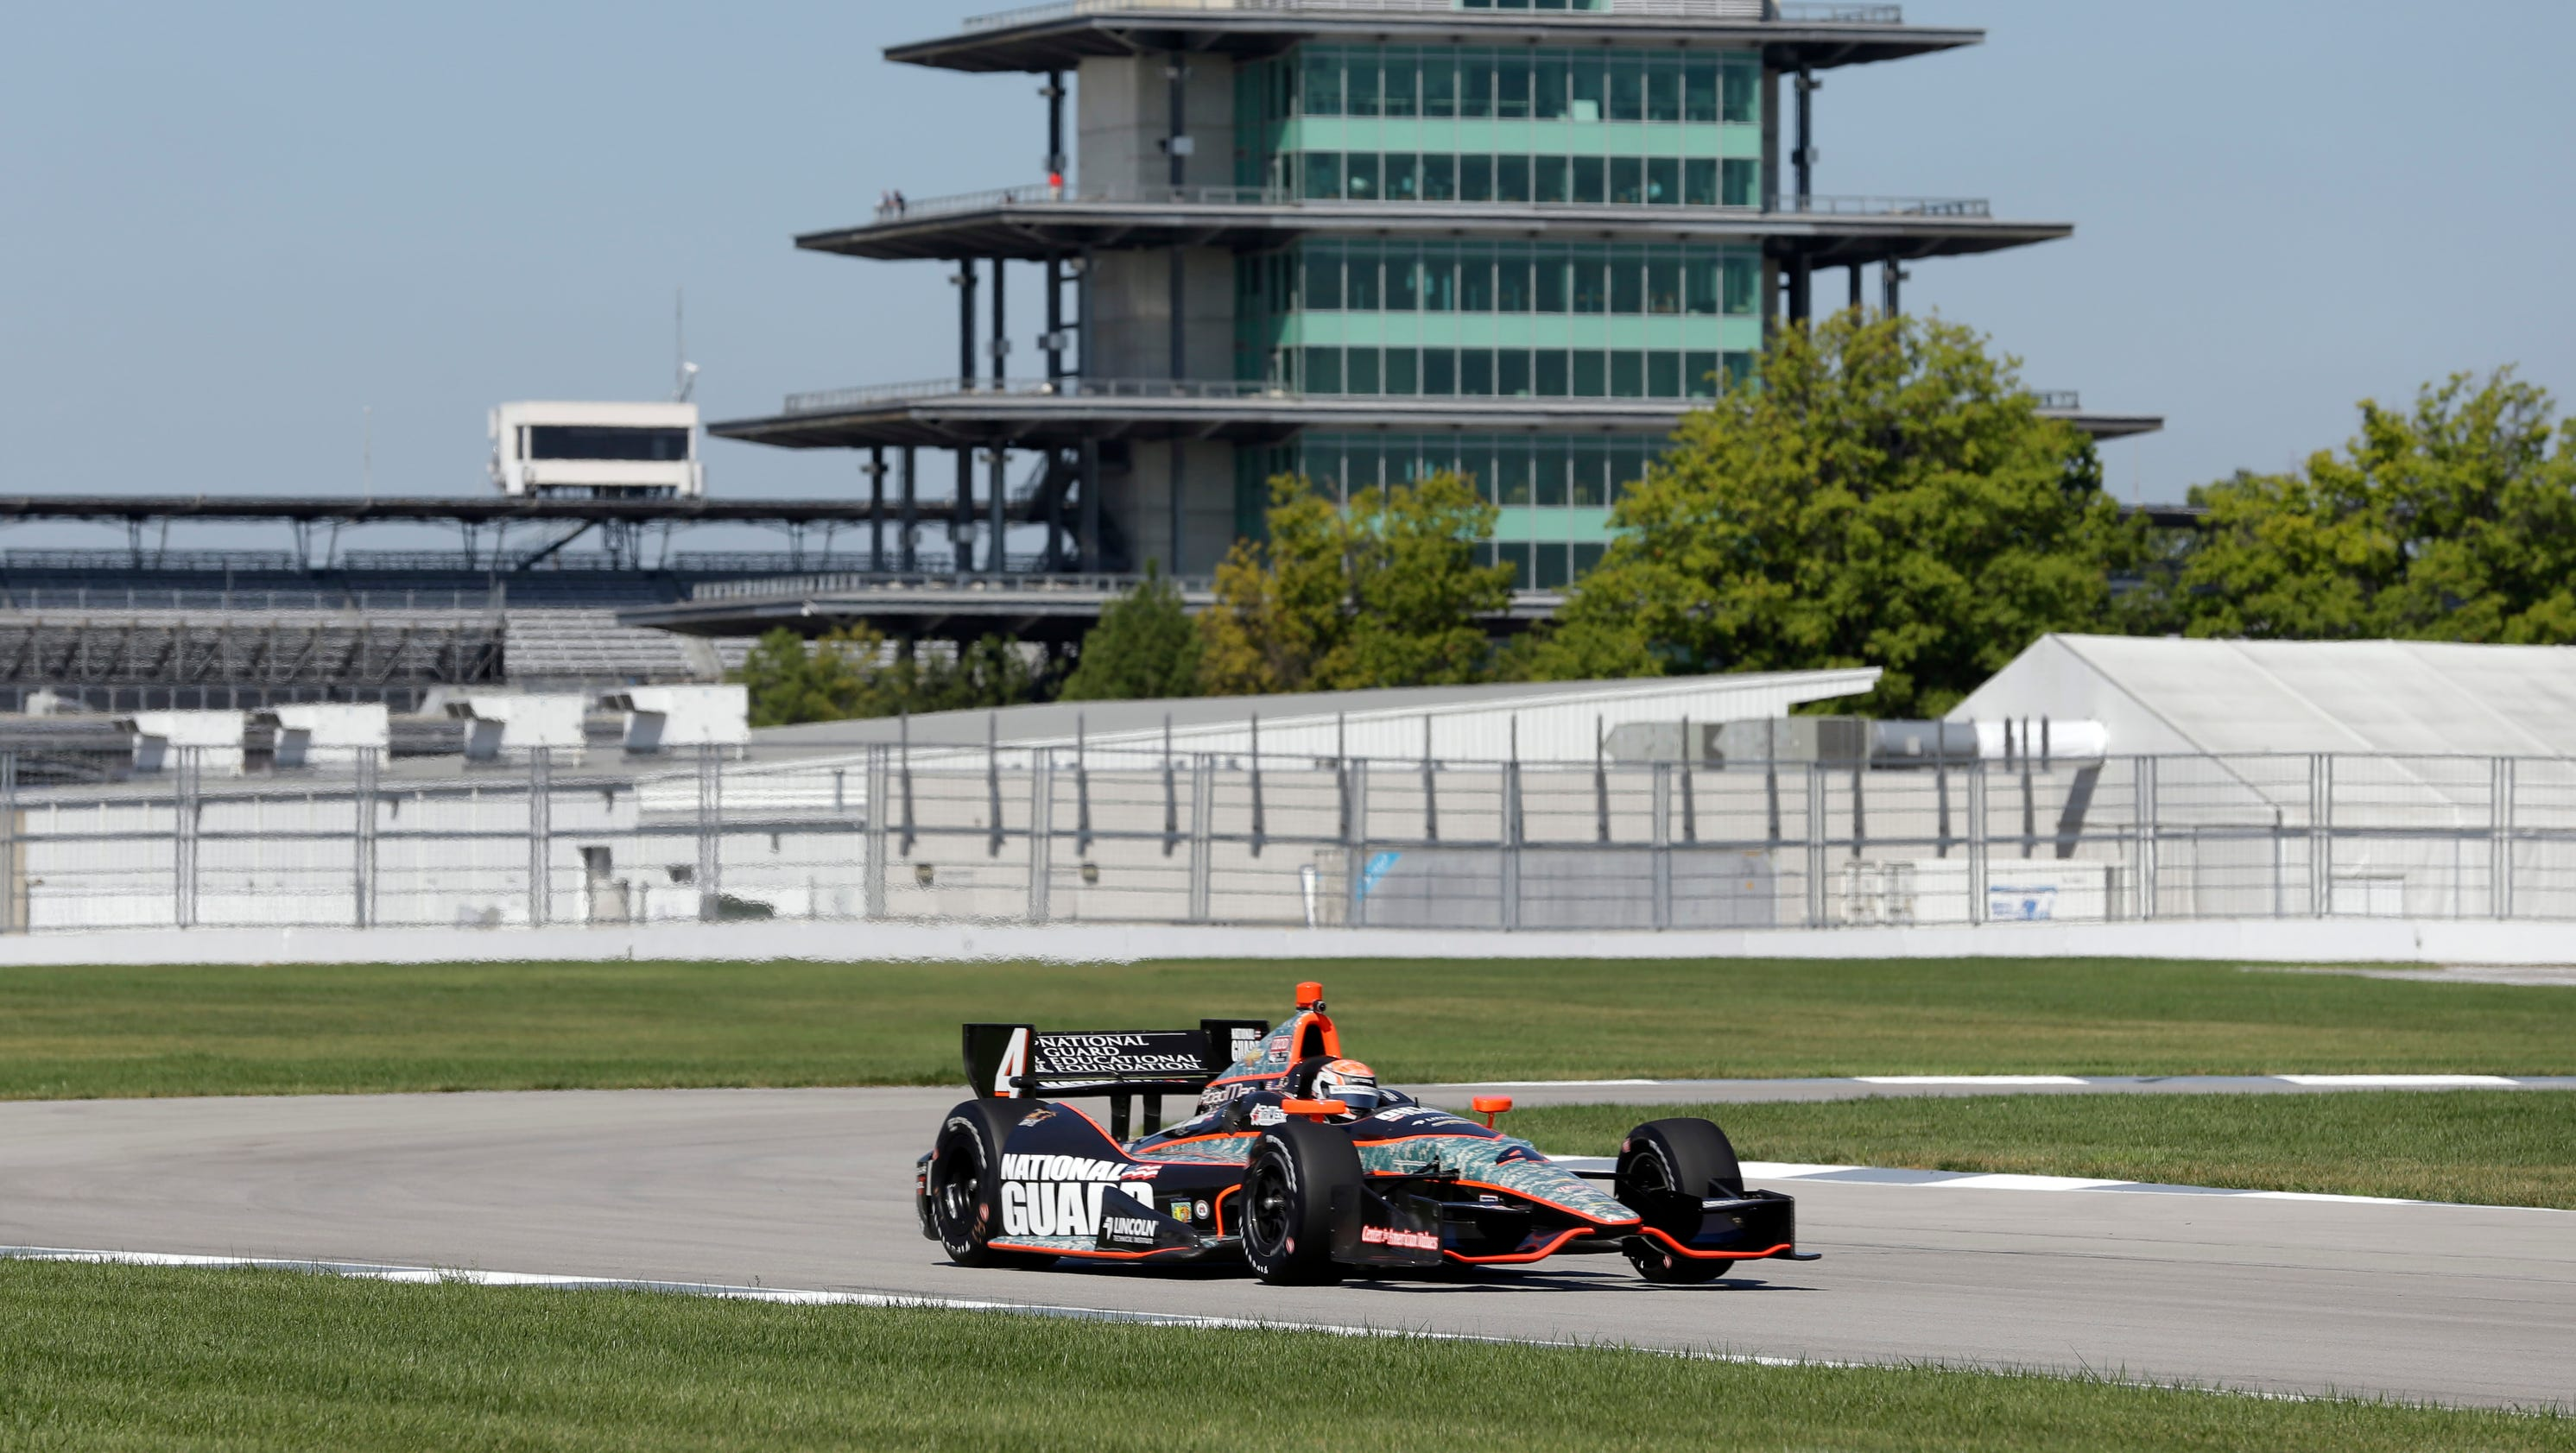 Indianapolis motor speedway reveals details of road race